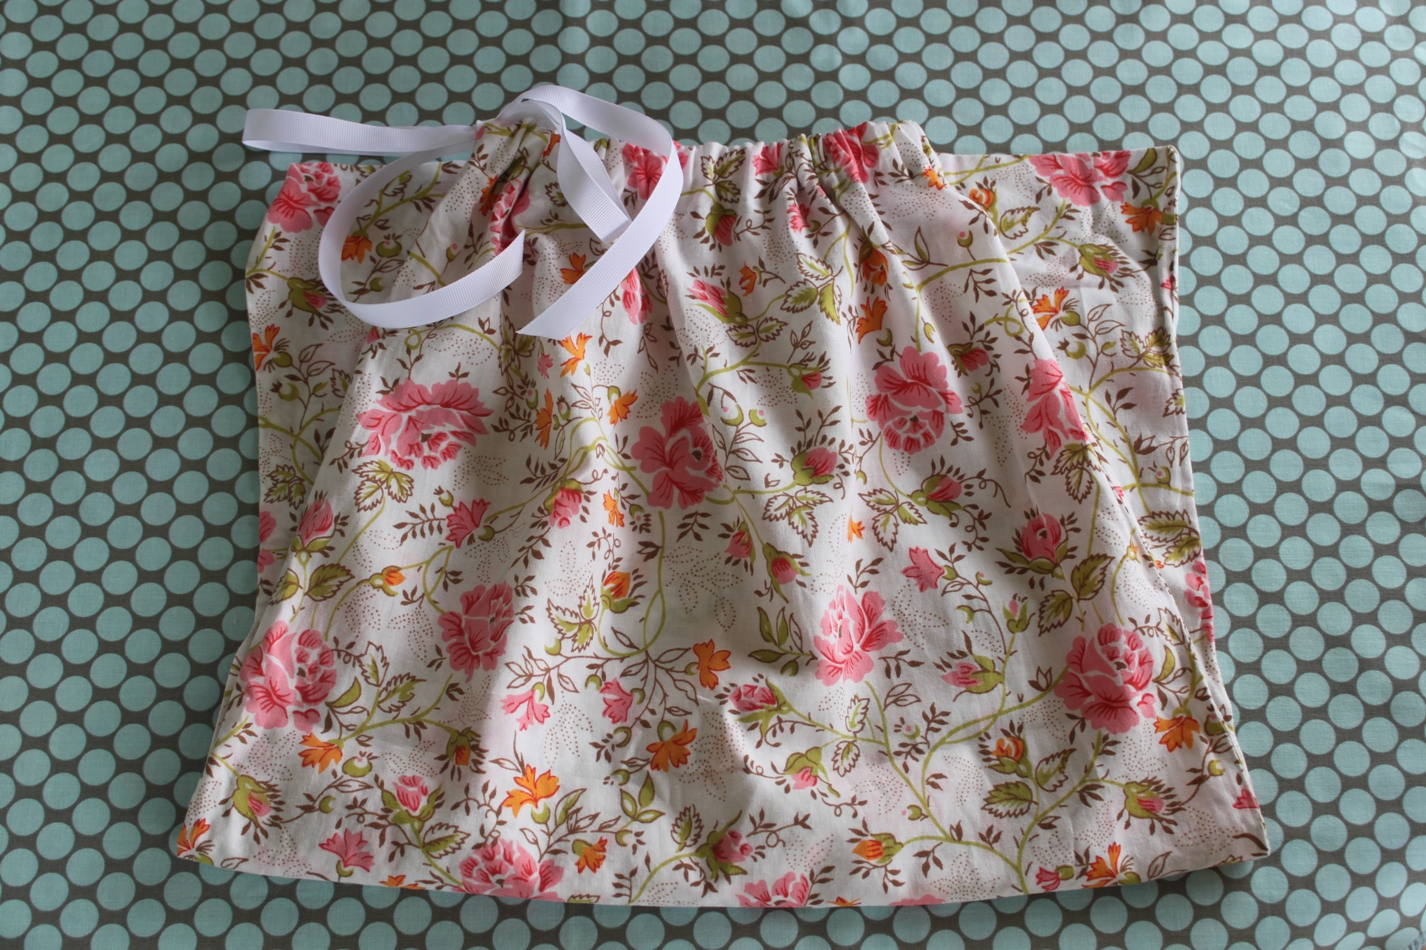 Free Sewing Pattern Pillowcase Bag & 30 Free Sewing Patterns For The Beginning Sewer pillowsntoast.com